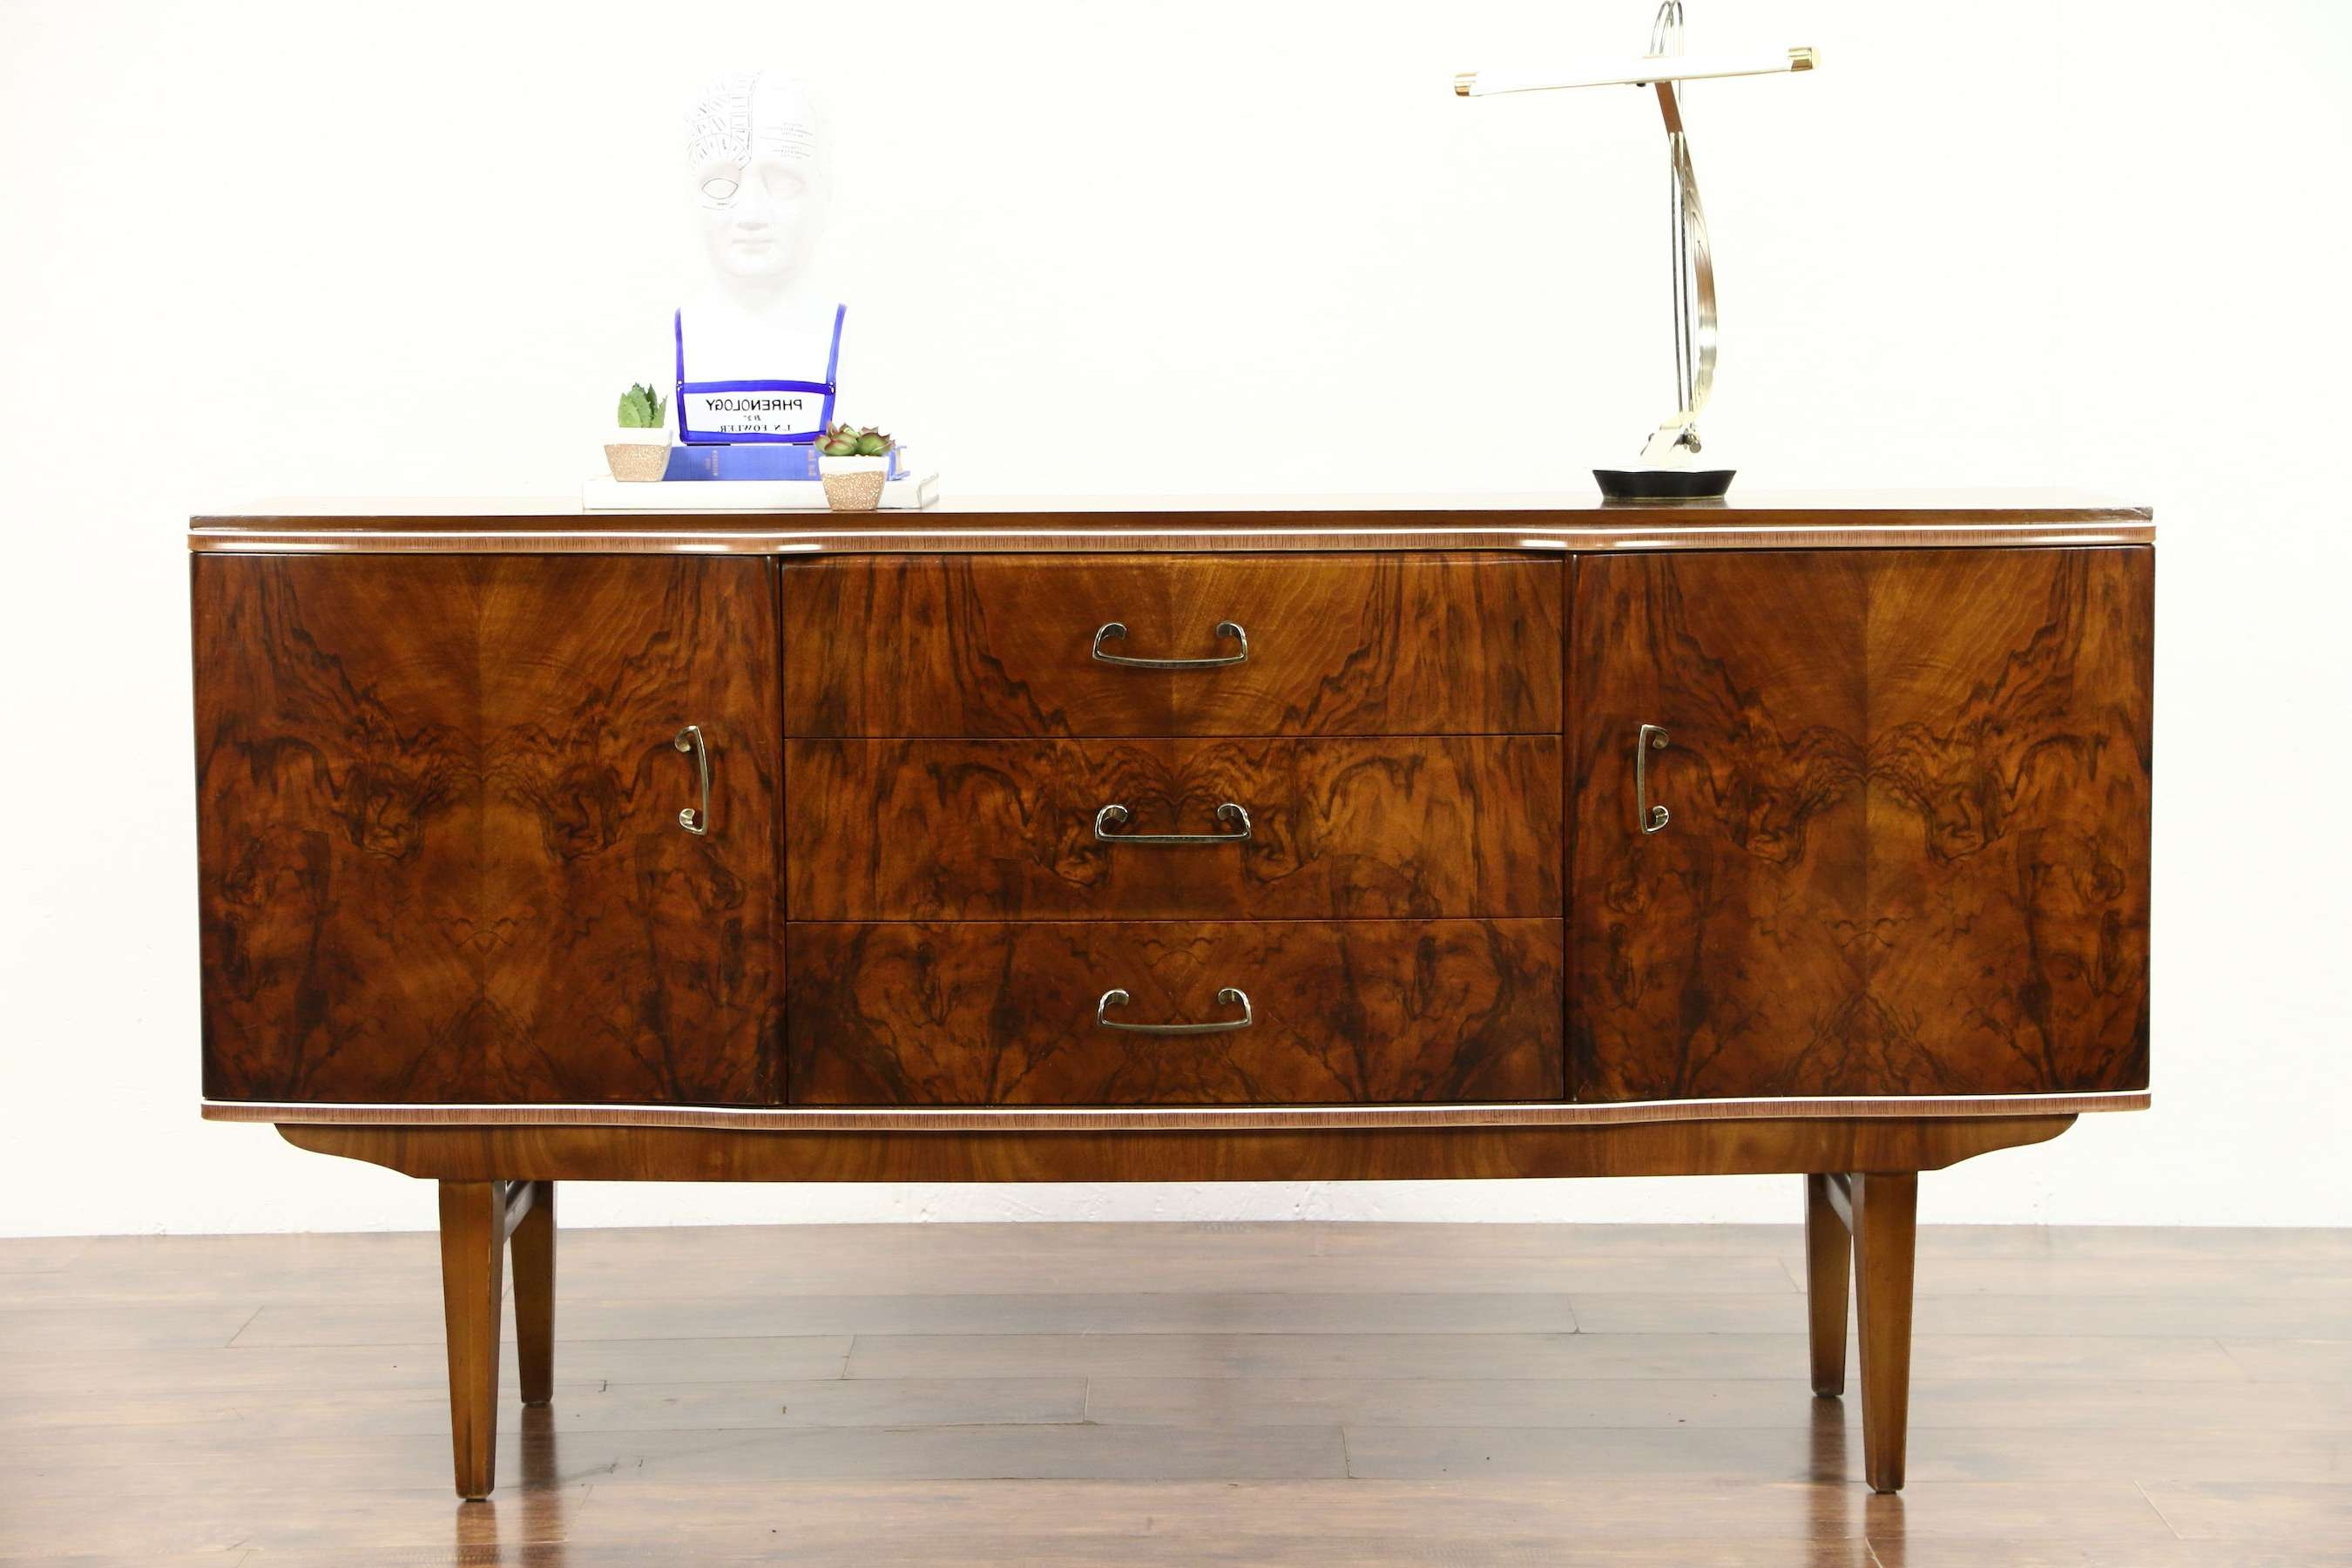 Sold – Art Deco 1940's Vintage Burl Sideboard, Server, Buffet Or Pertaining To Sideboards Bar Cabinet (View 3 of 20)